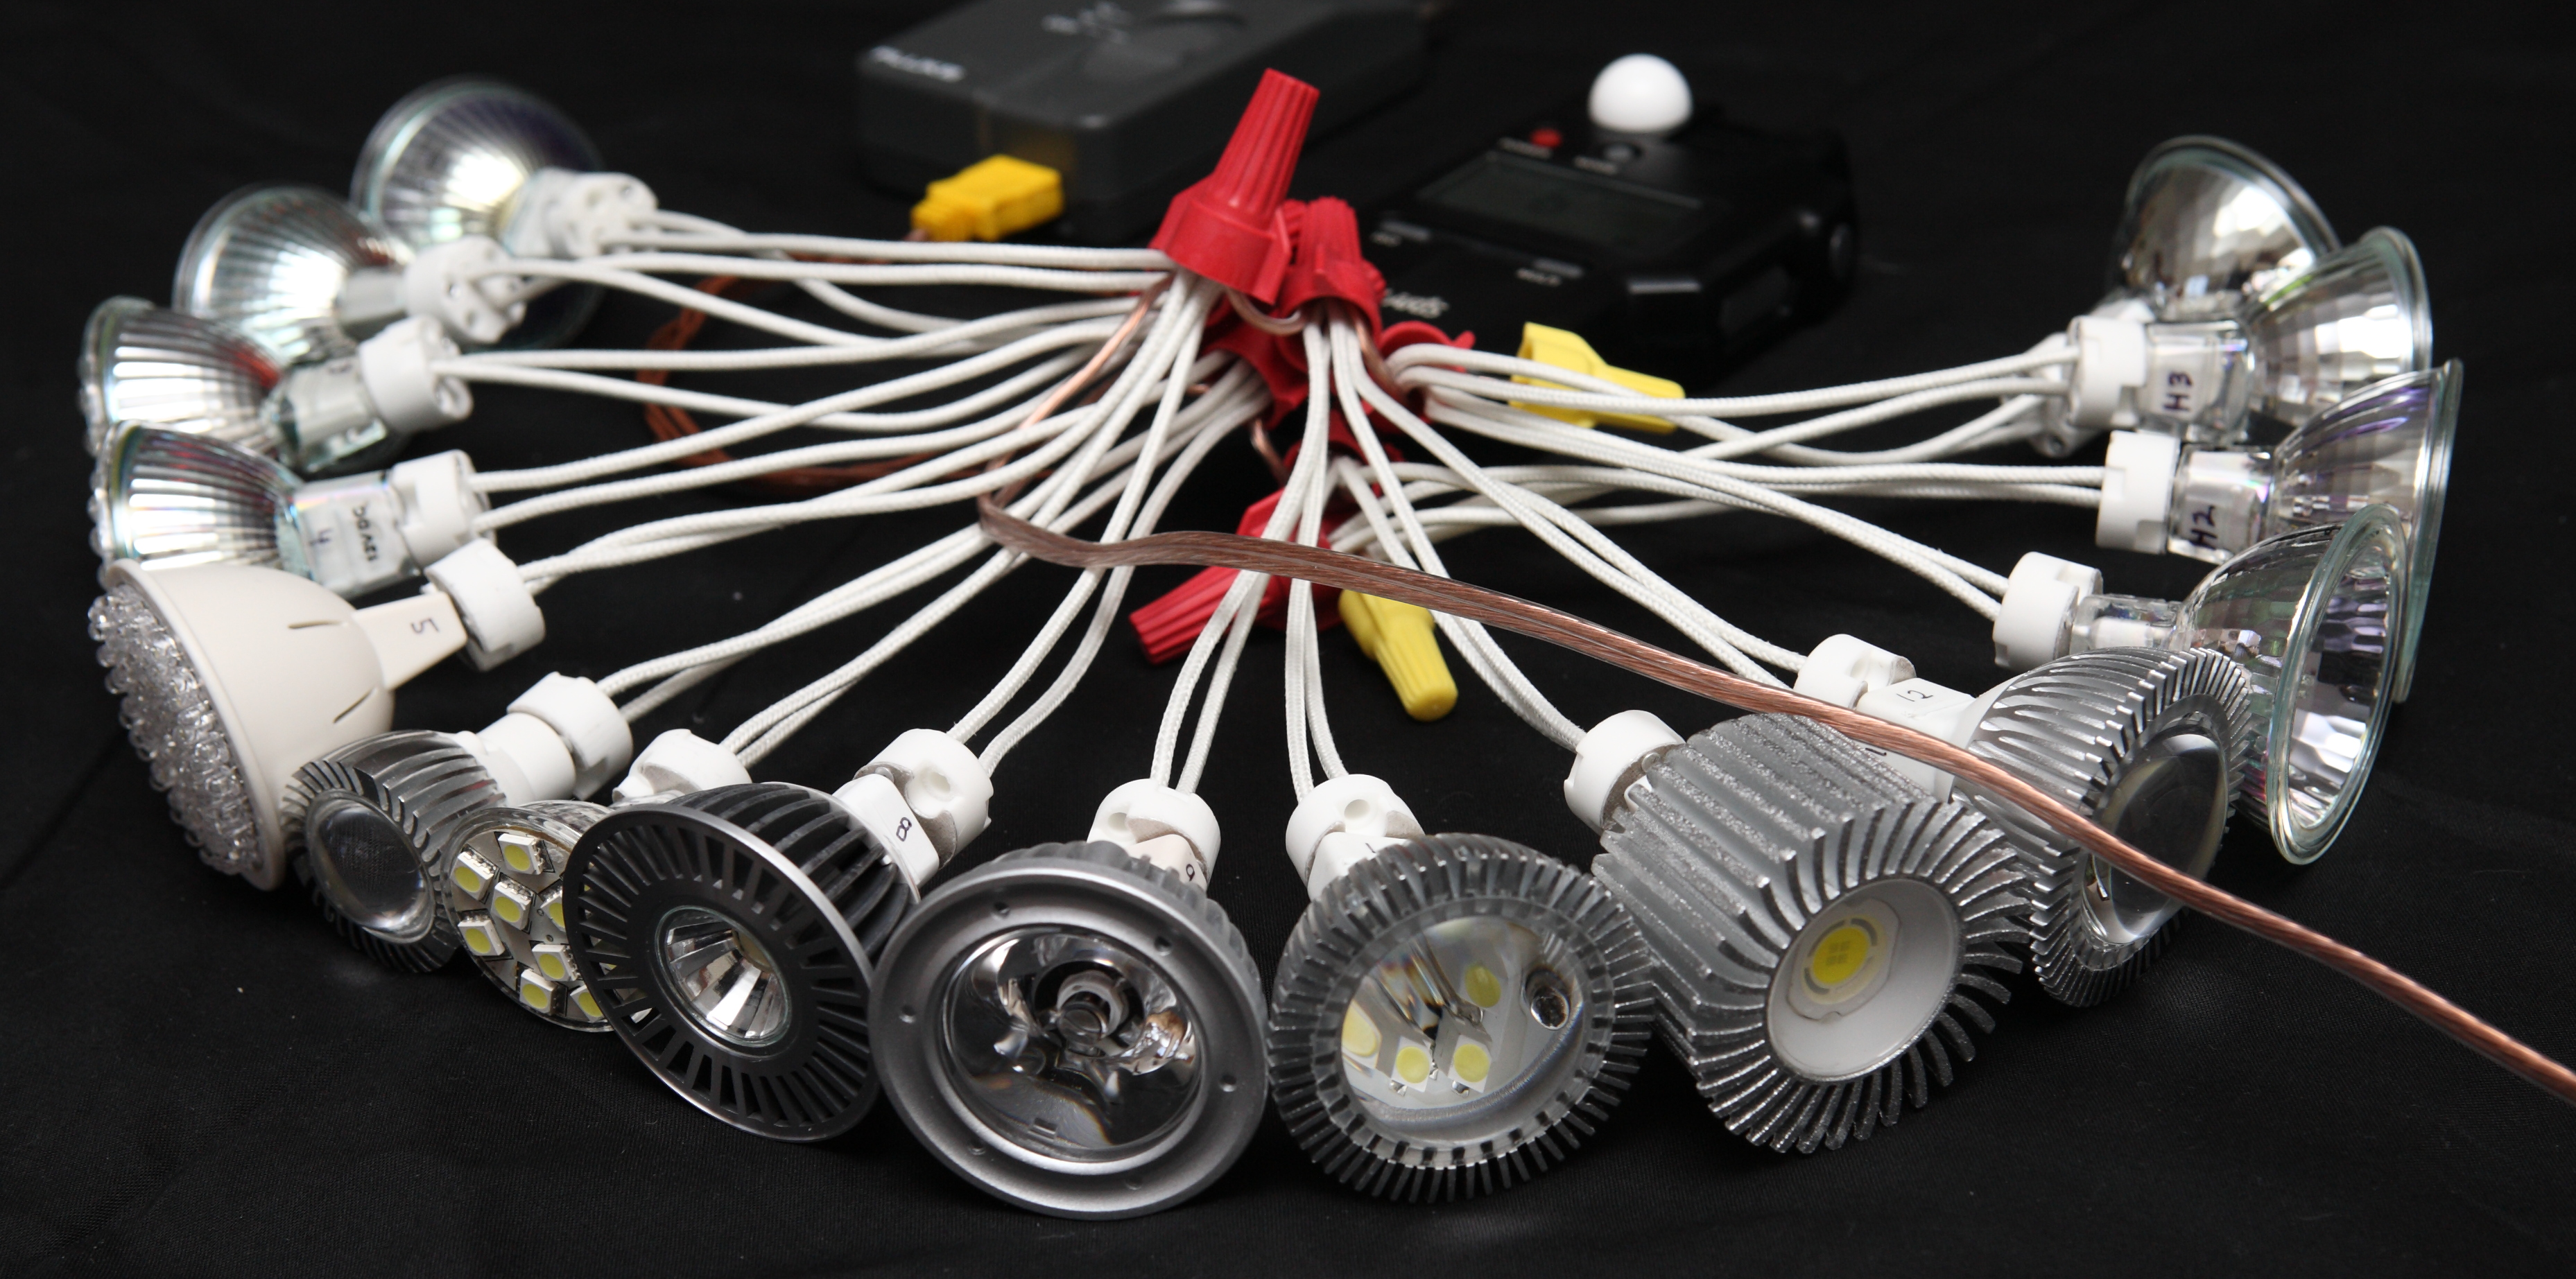 Outstanding 12v Led Lights On Thin Wires Ideas - Everything You Need ...